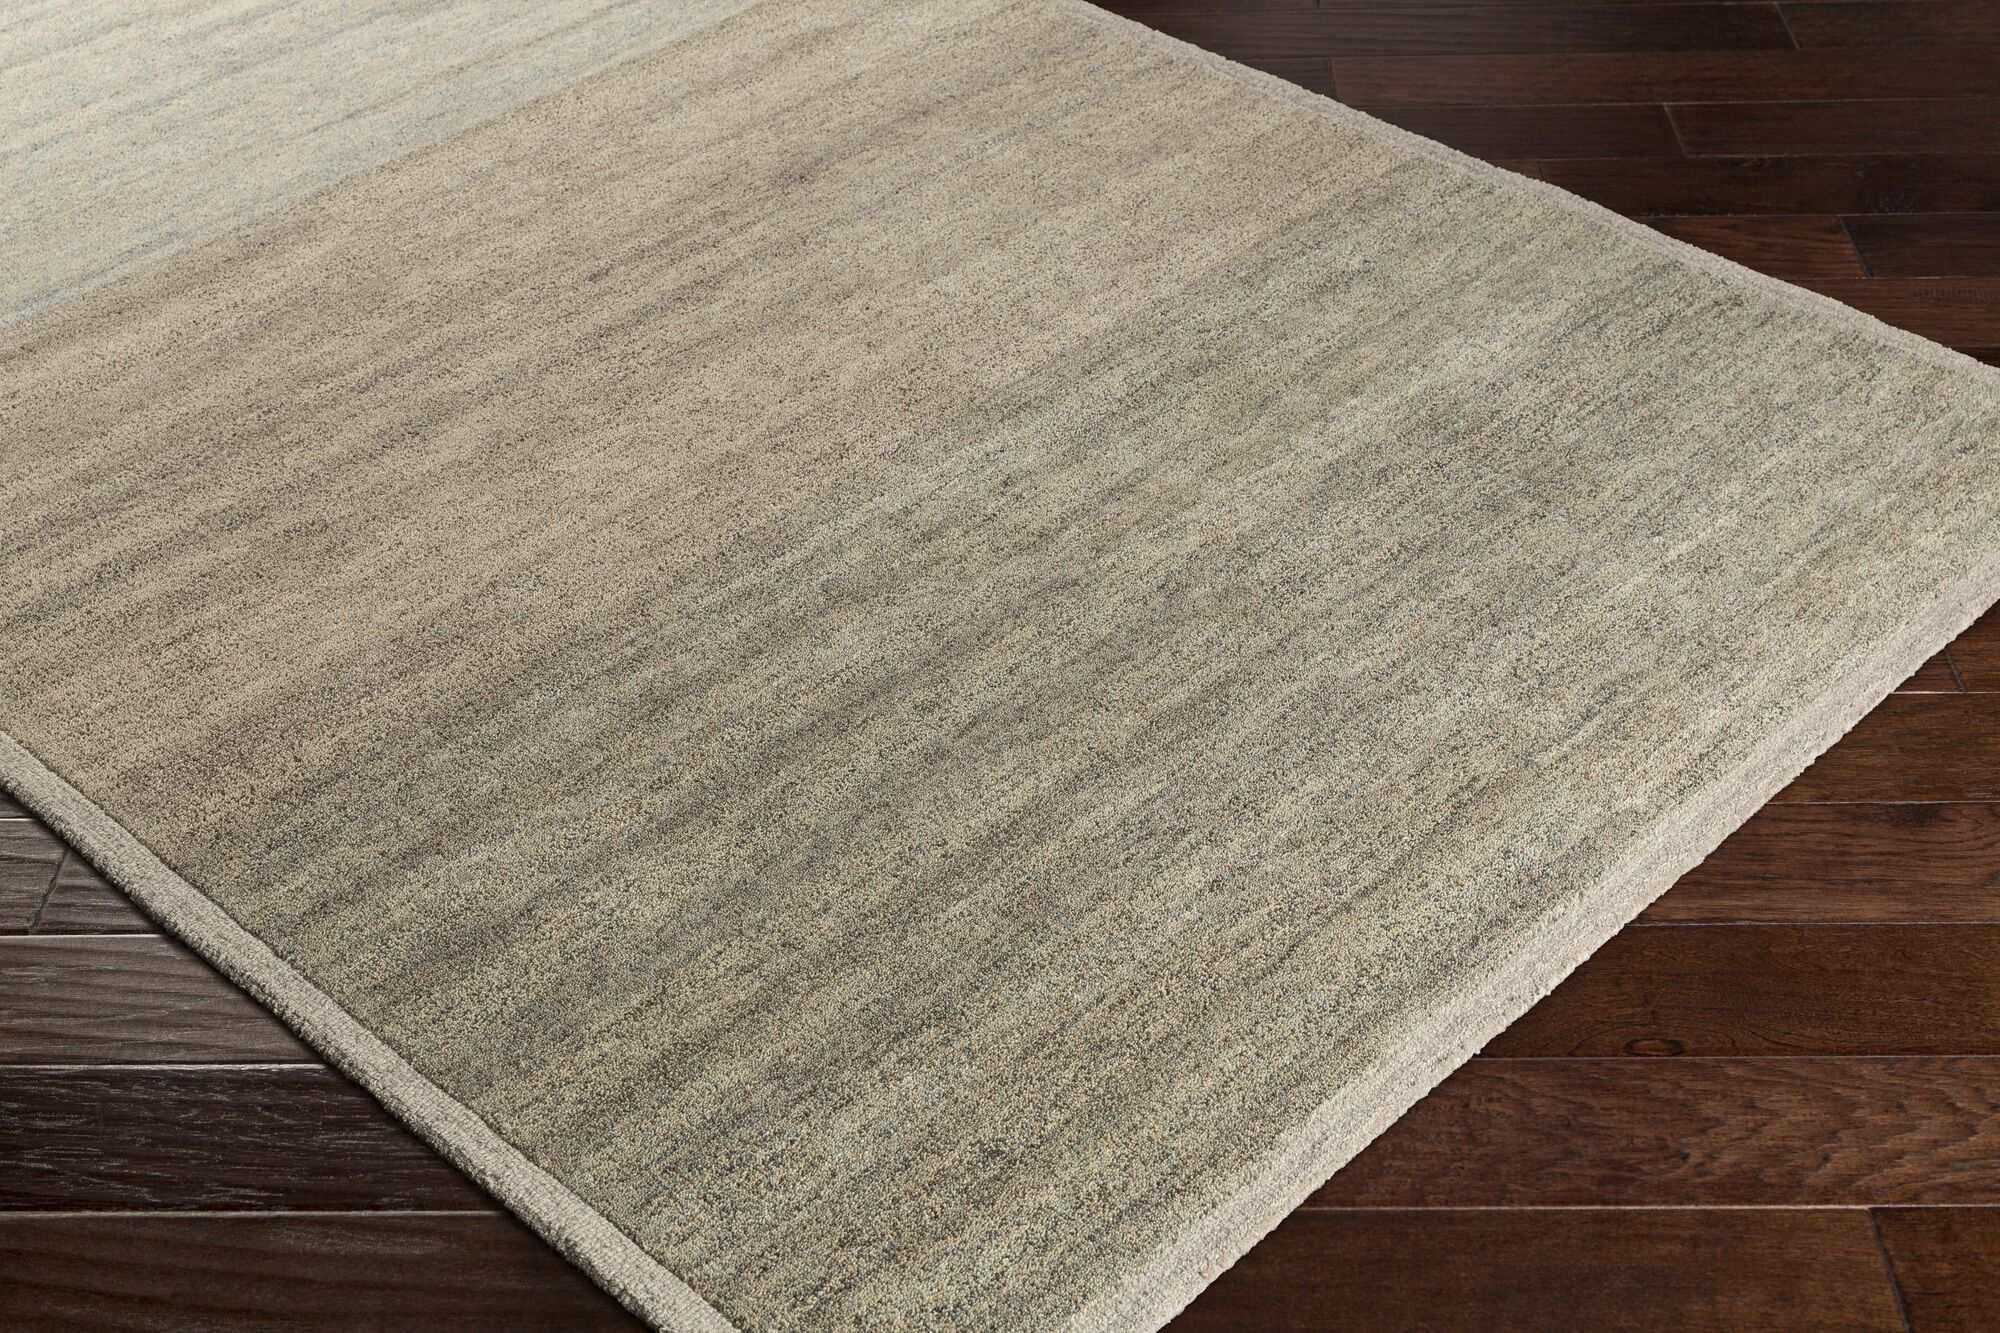 Ciccone Hand-Tufted Wool Ivory/Taupe Area Rug Rug Size: Rectangle 8' x 10'